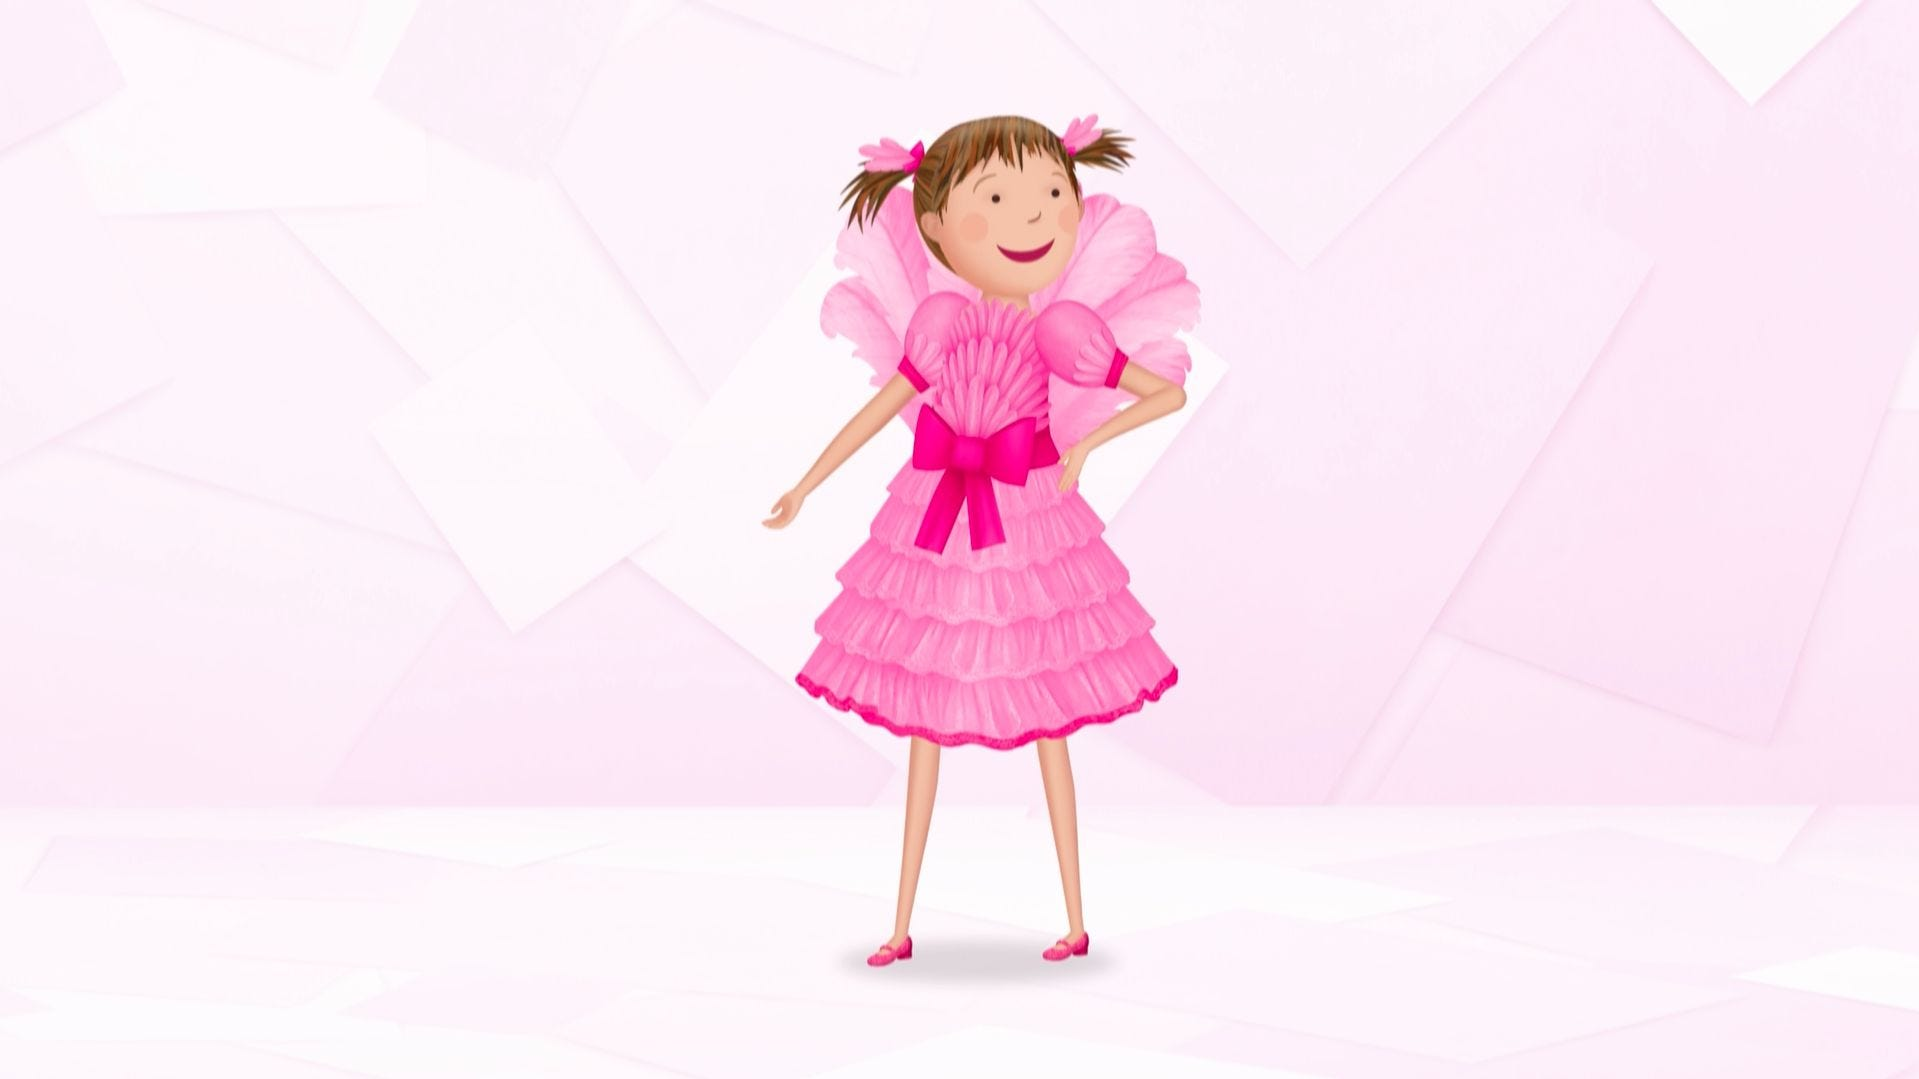 Watch exclusive clip of 'Pinkalicious & Peterrific' Valentine's Day celebration